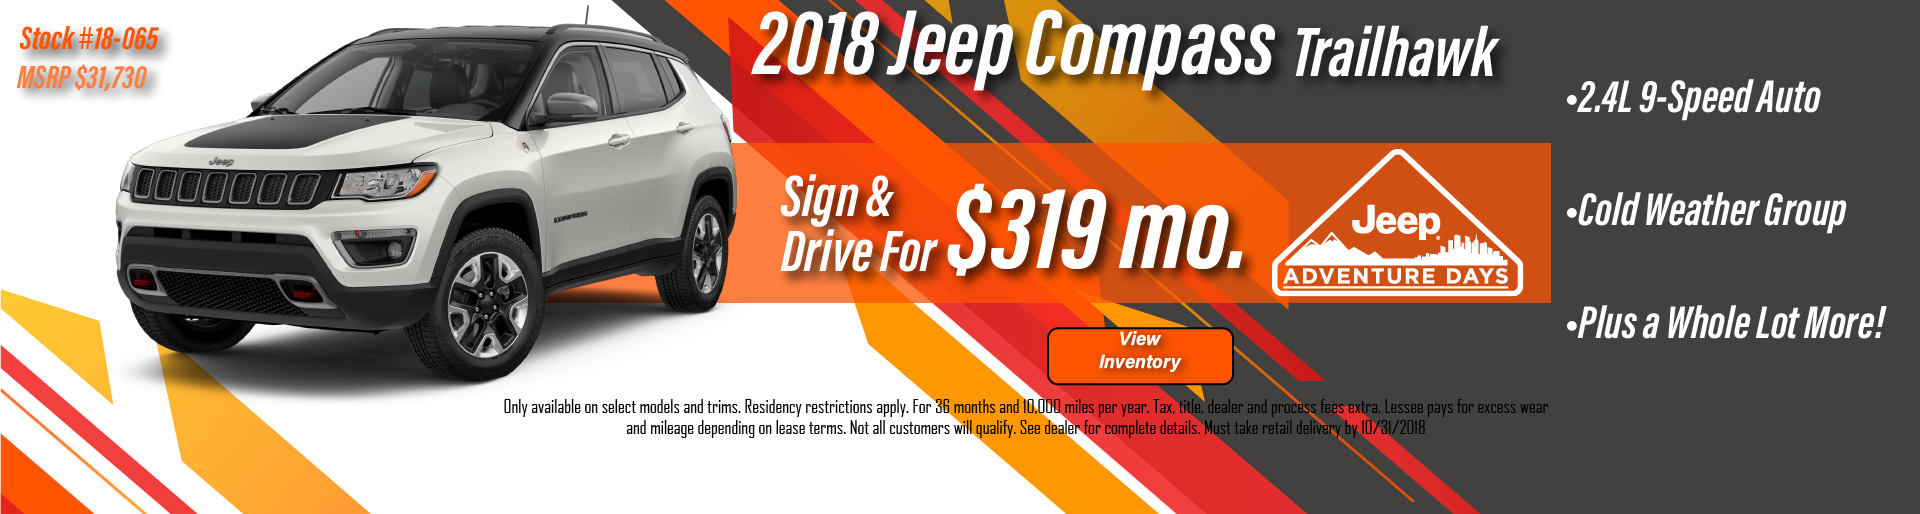 Tanner Motors Jeep Compass